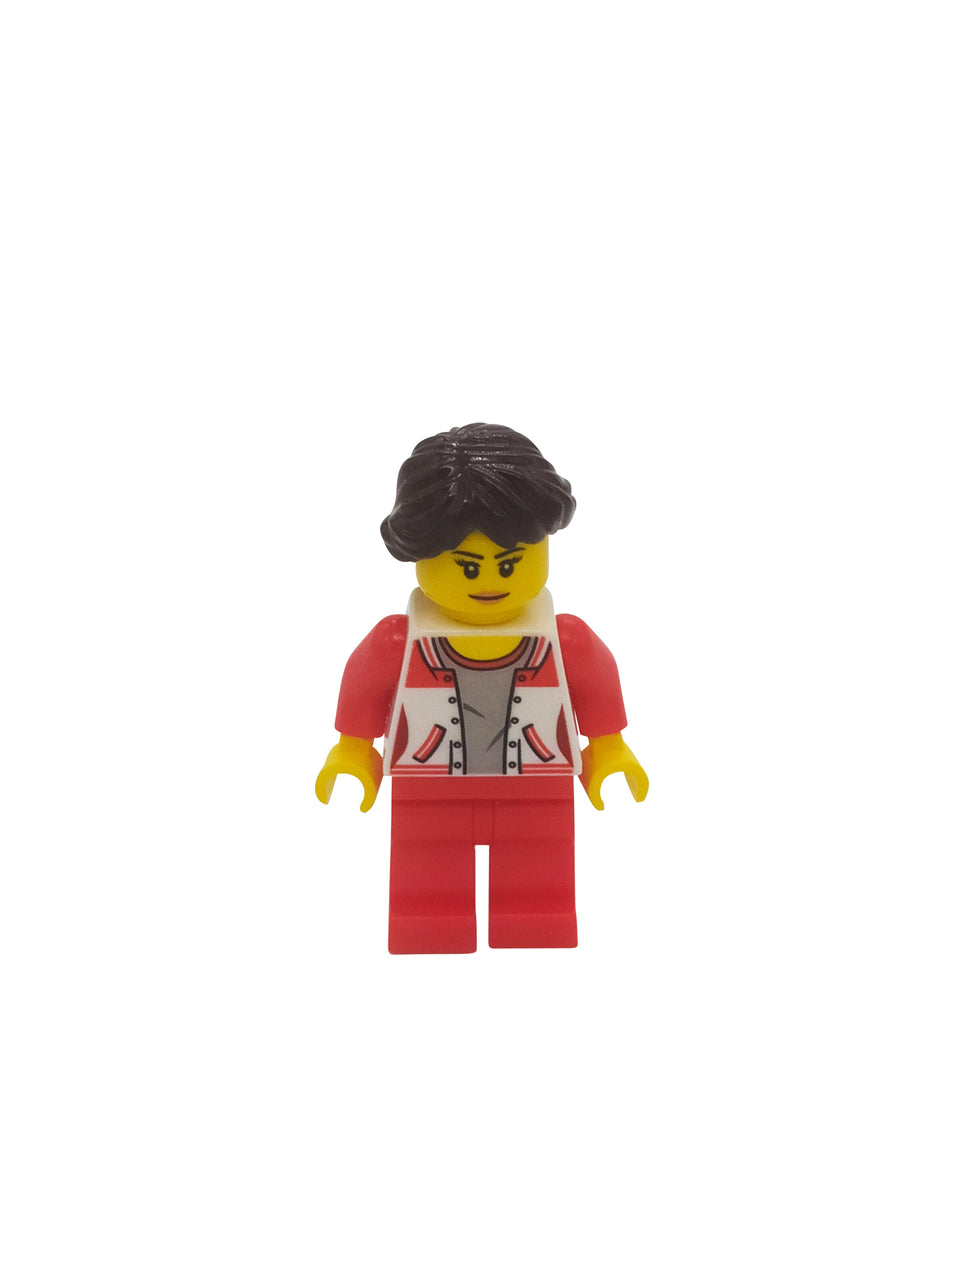 Woman figure in red suit and brown hair - Lego